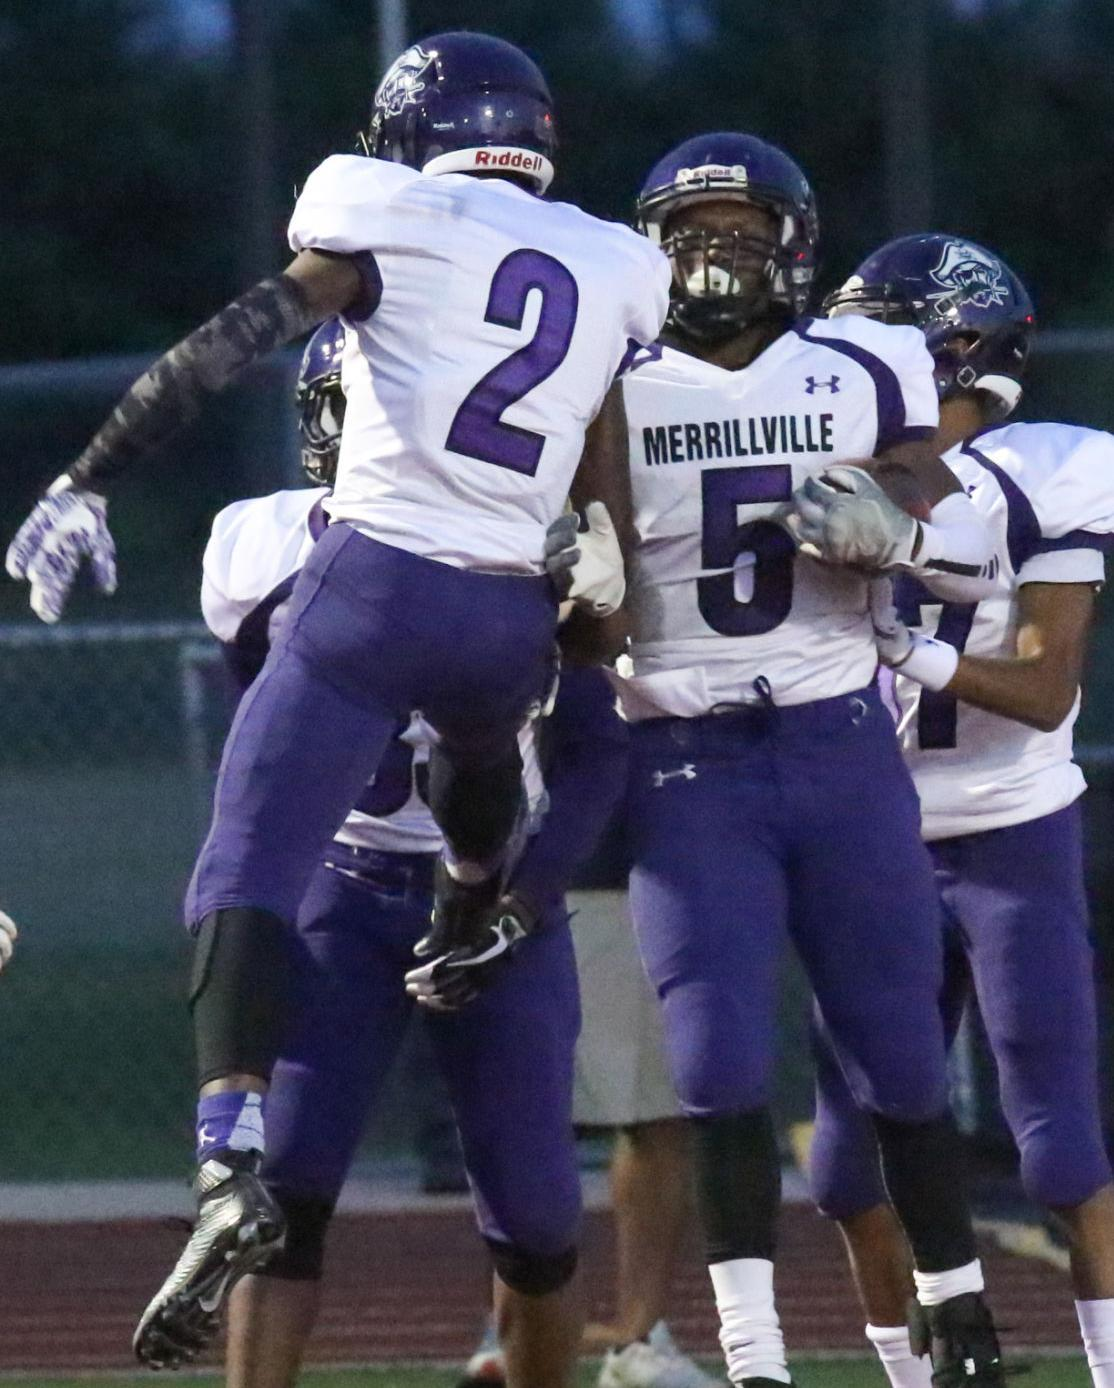 Saturday Morning QB: Merrillville's Fielder gets first win of career at C.P.